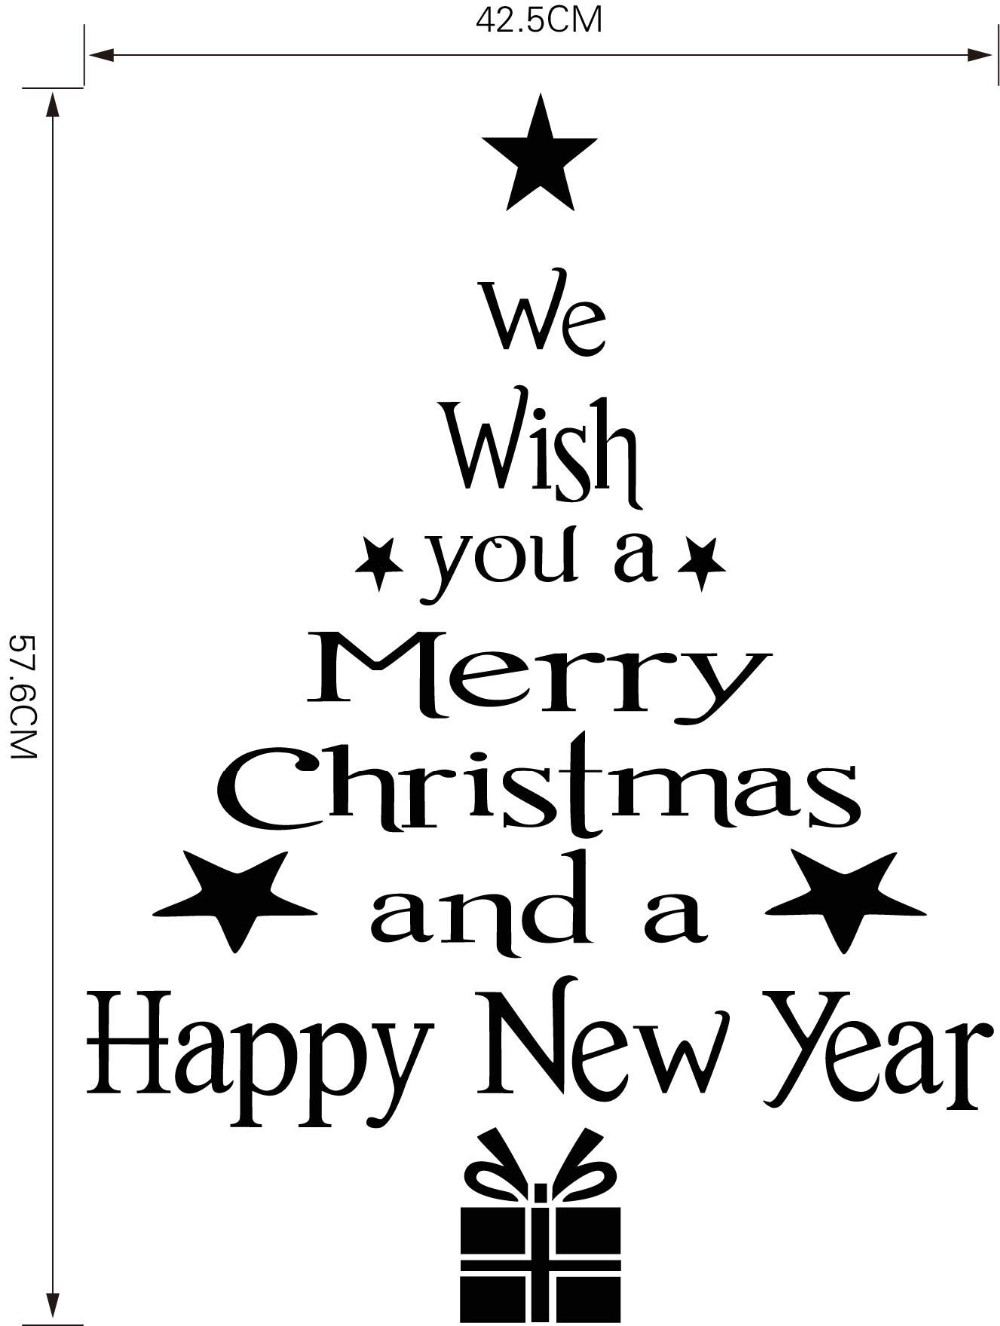 Oem wall window sticker merry christmas happy new year sticker item specifics classification for wall amipublicfo Gallery